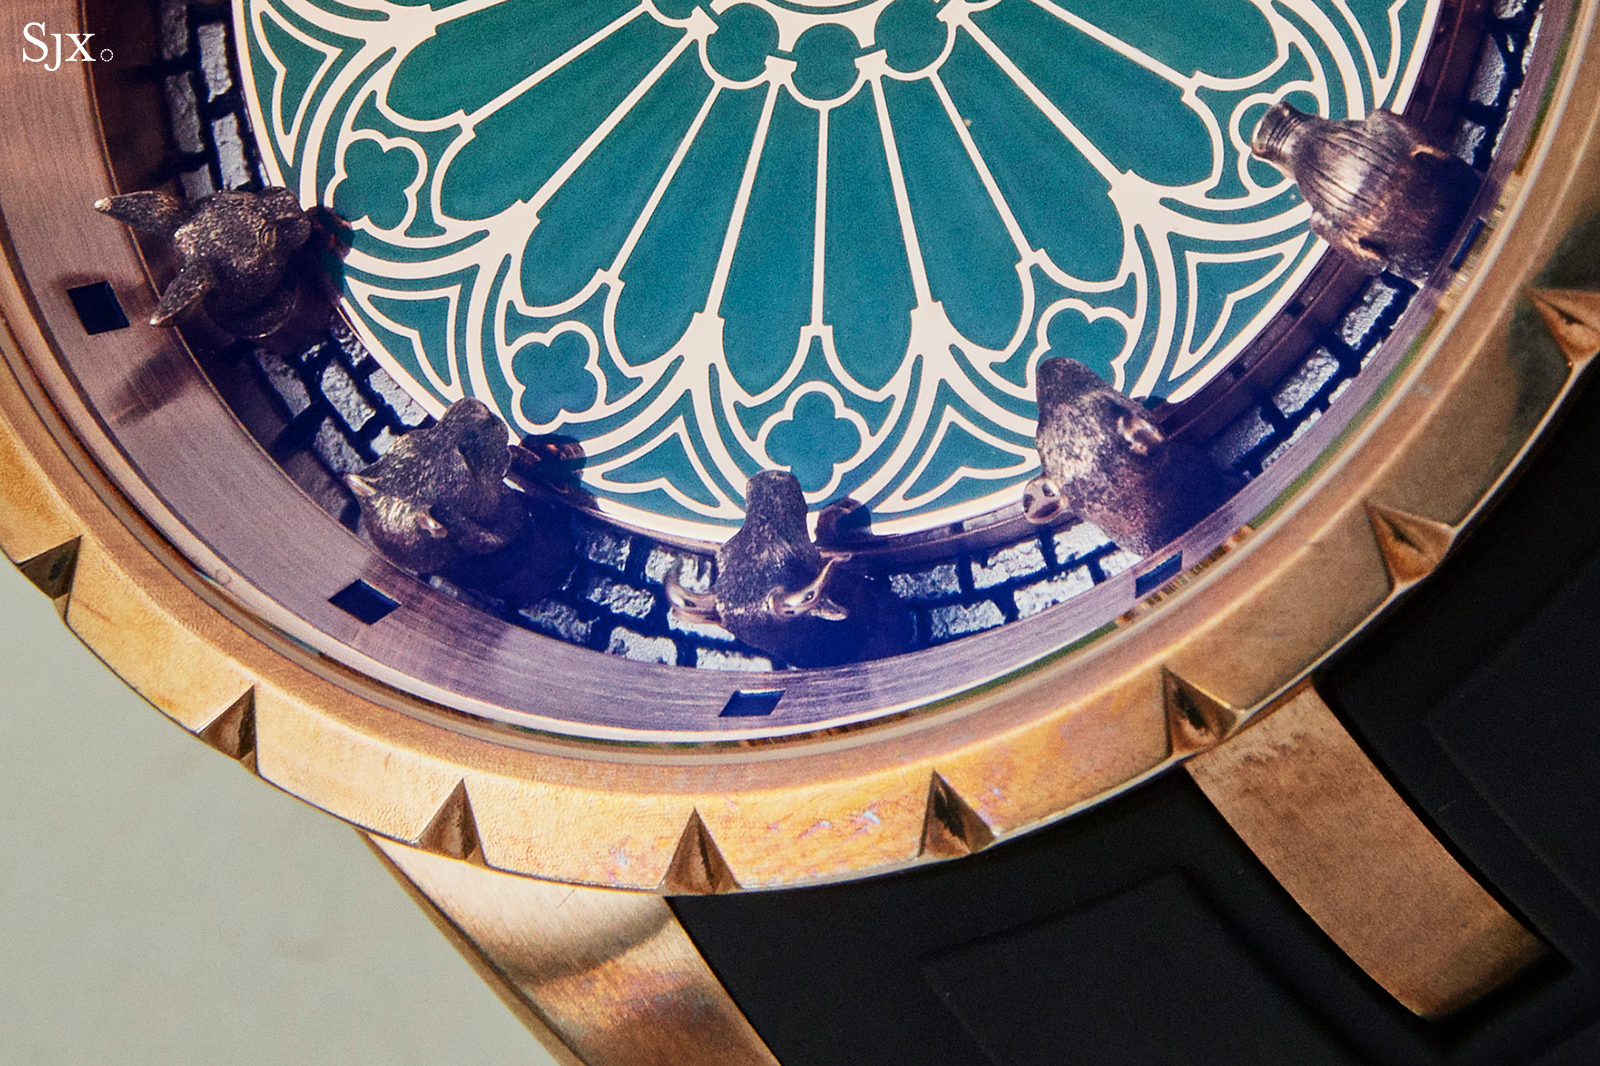 Roger Dubuis Excalibur Chinese Zodiac close up 2